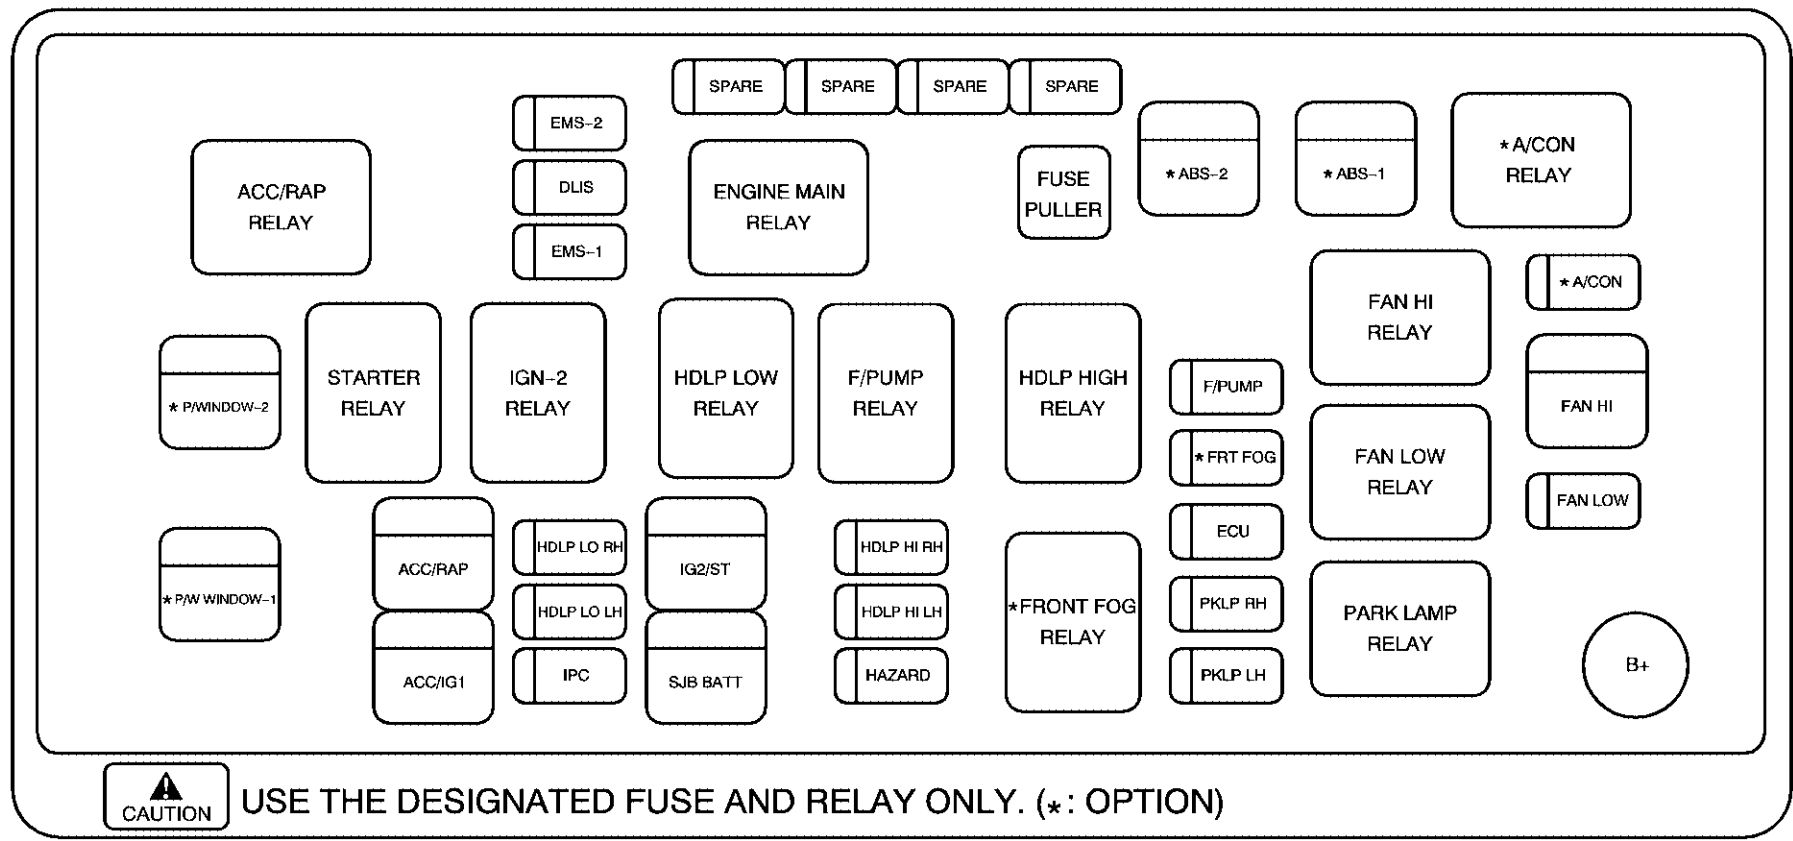 2004 chevy aveo fuse diagram wiring diagram used 2007 chevy aveo stereo wiring diagram 2004 chevy [ 1793 x 841 Pixel ]